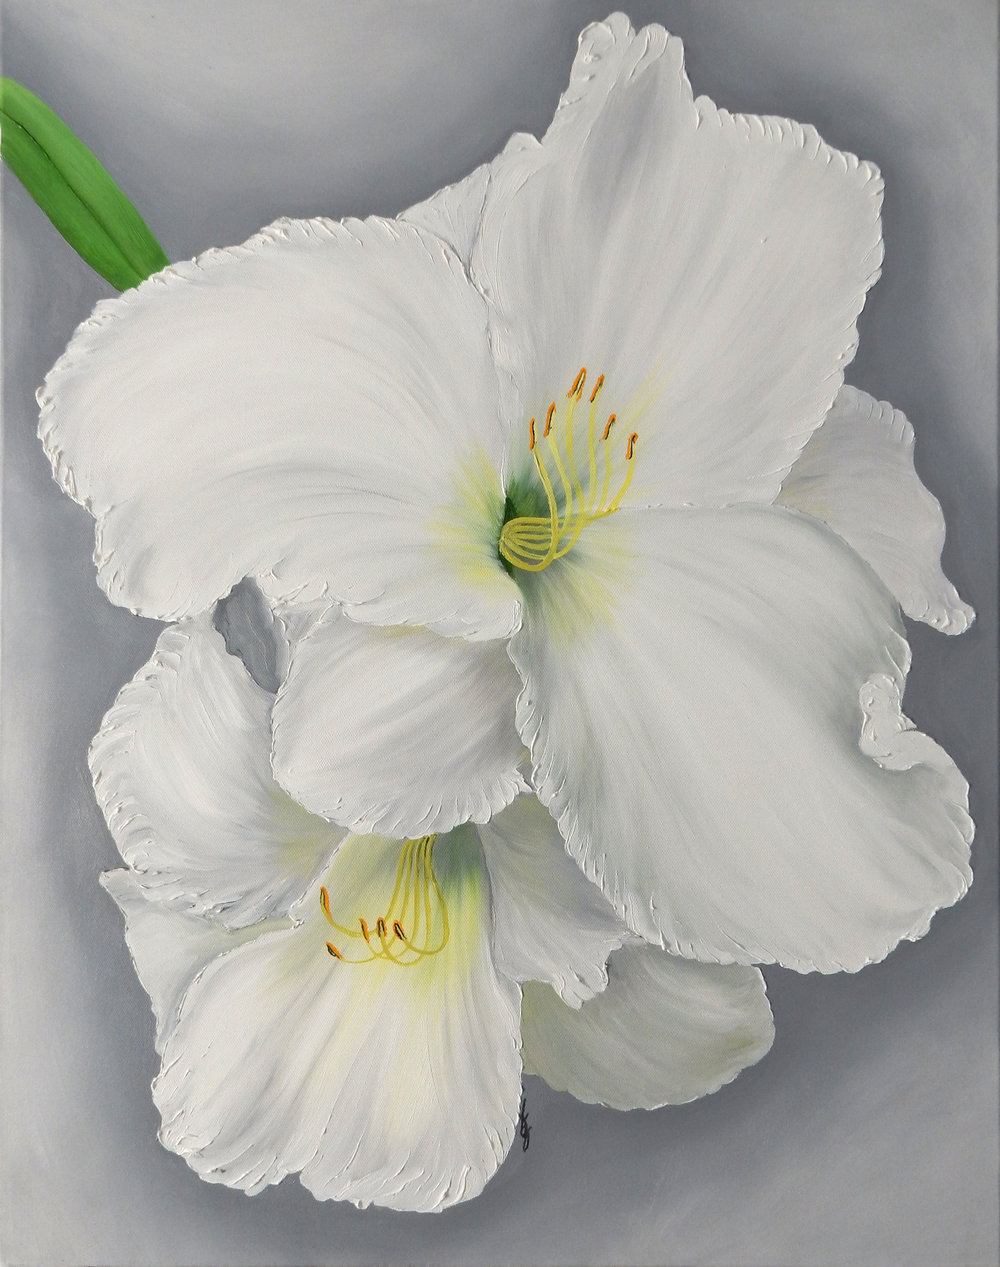 White Daylily Double  2017 Oil on canvas 28 x 22 x 1.5 inches